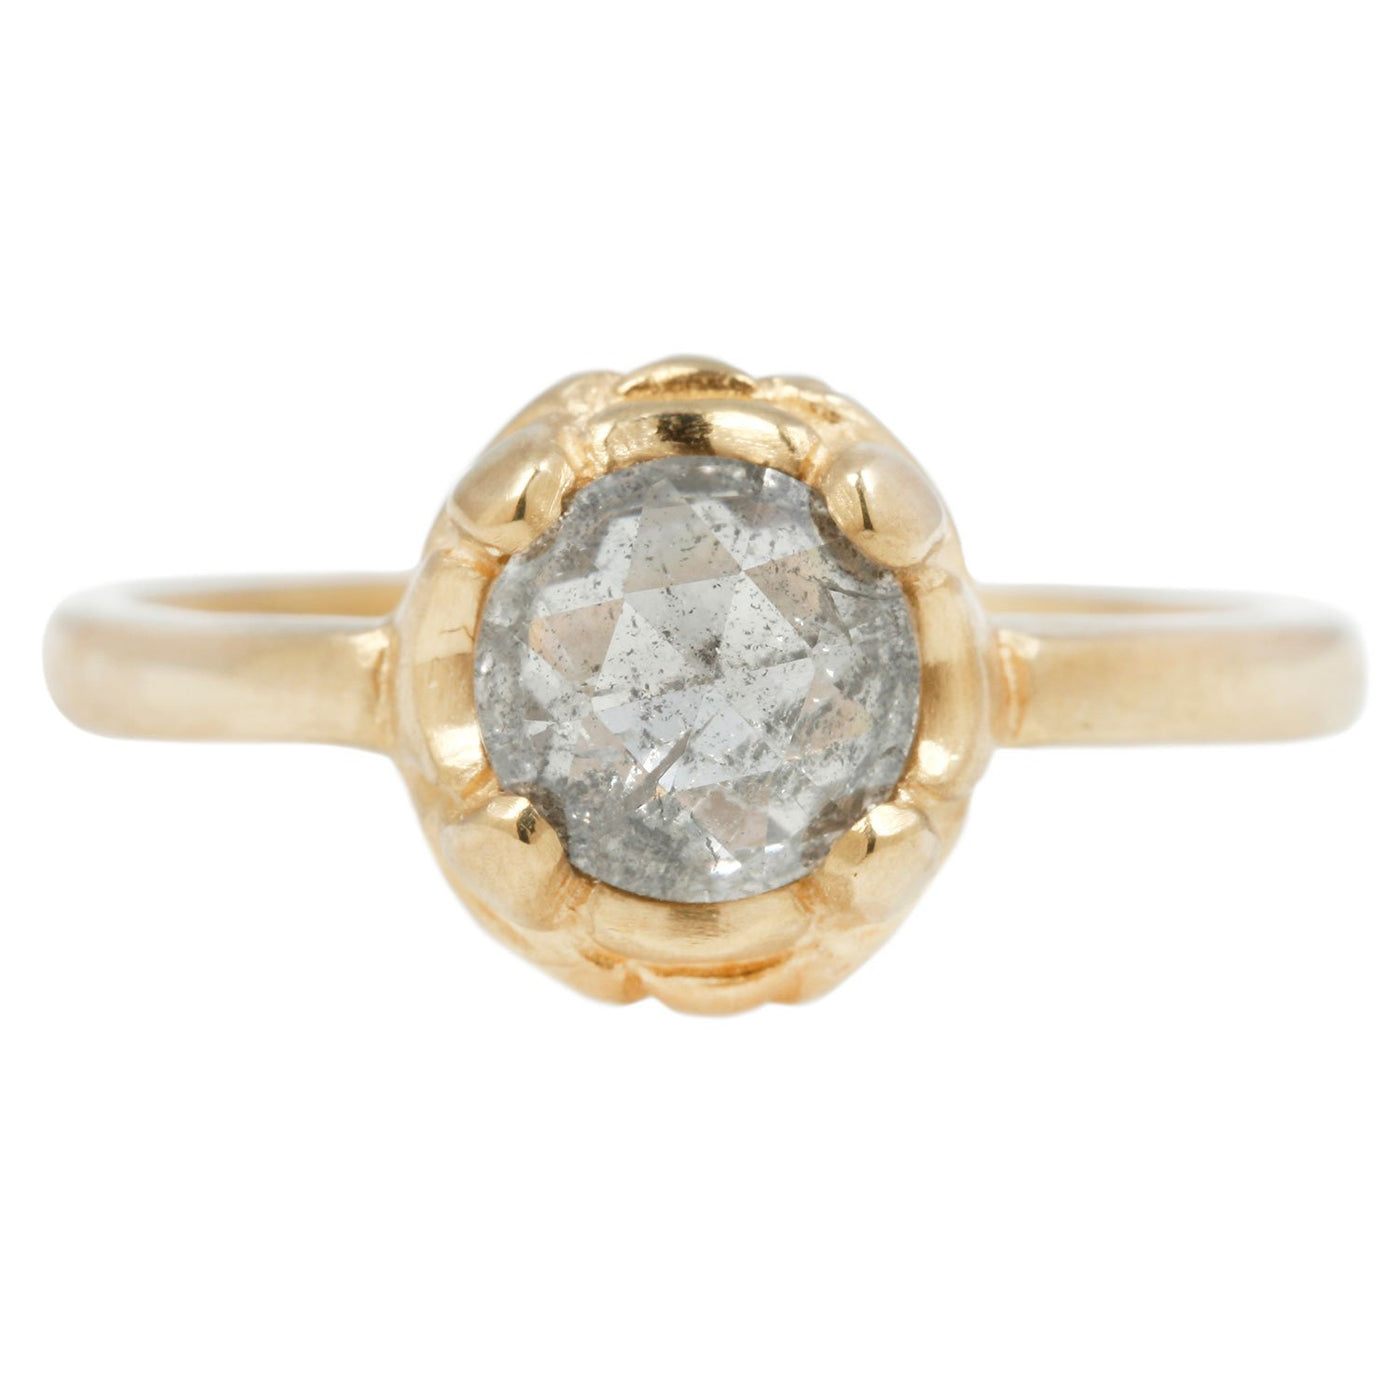 Susan Highsmith Gray Diamond Josephine Ring